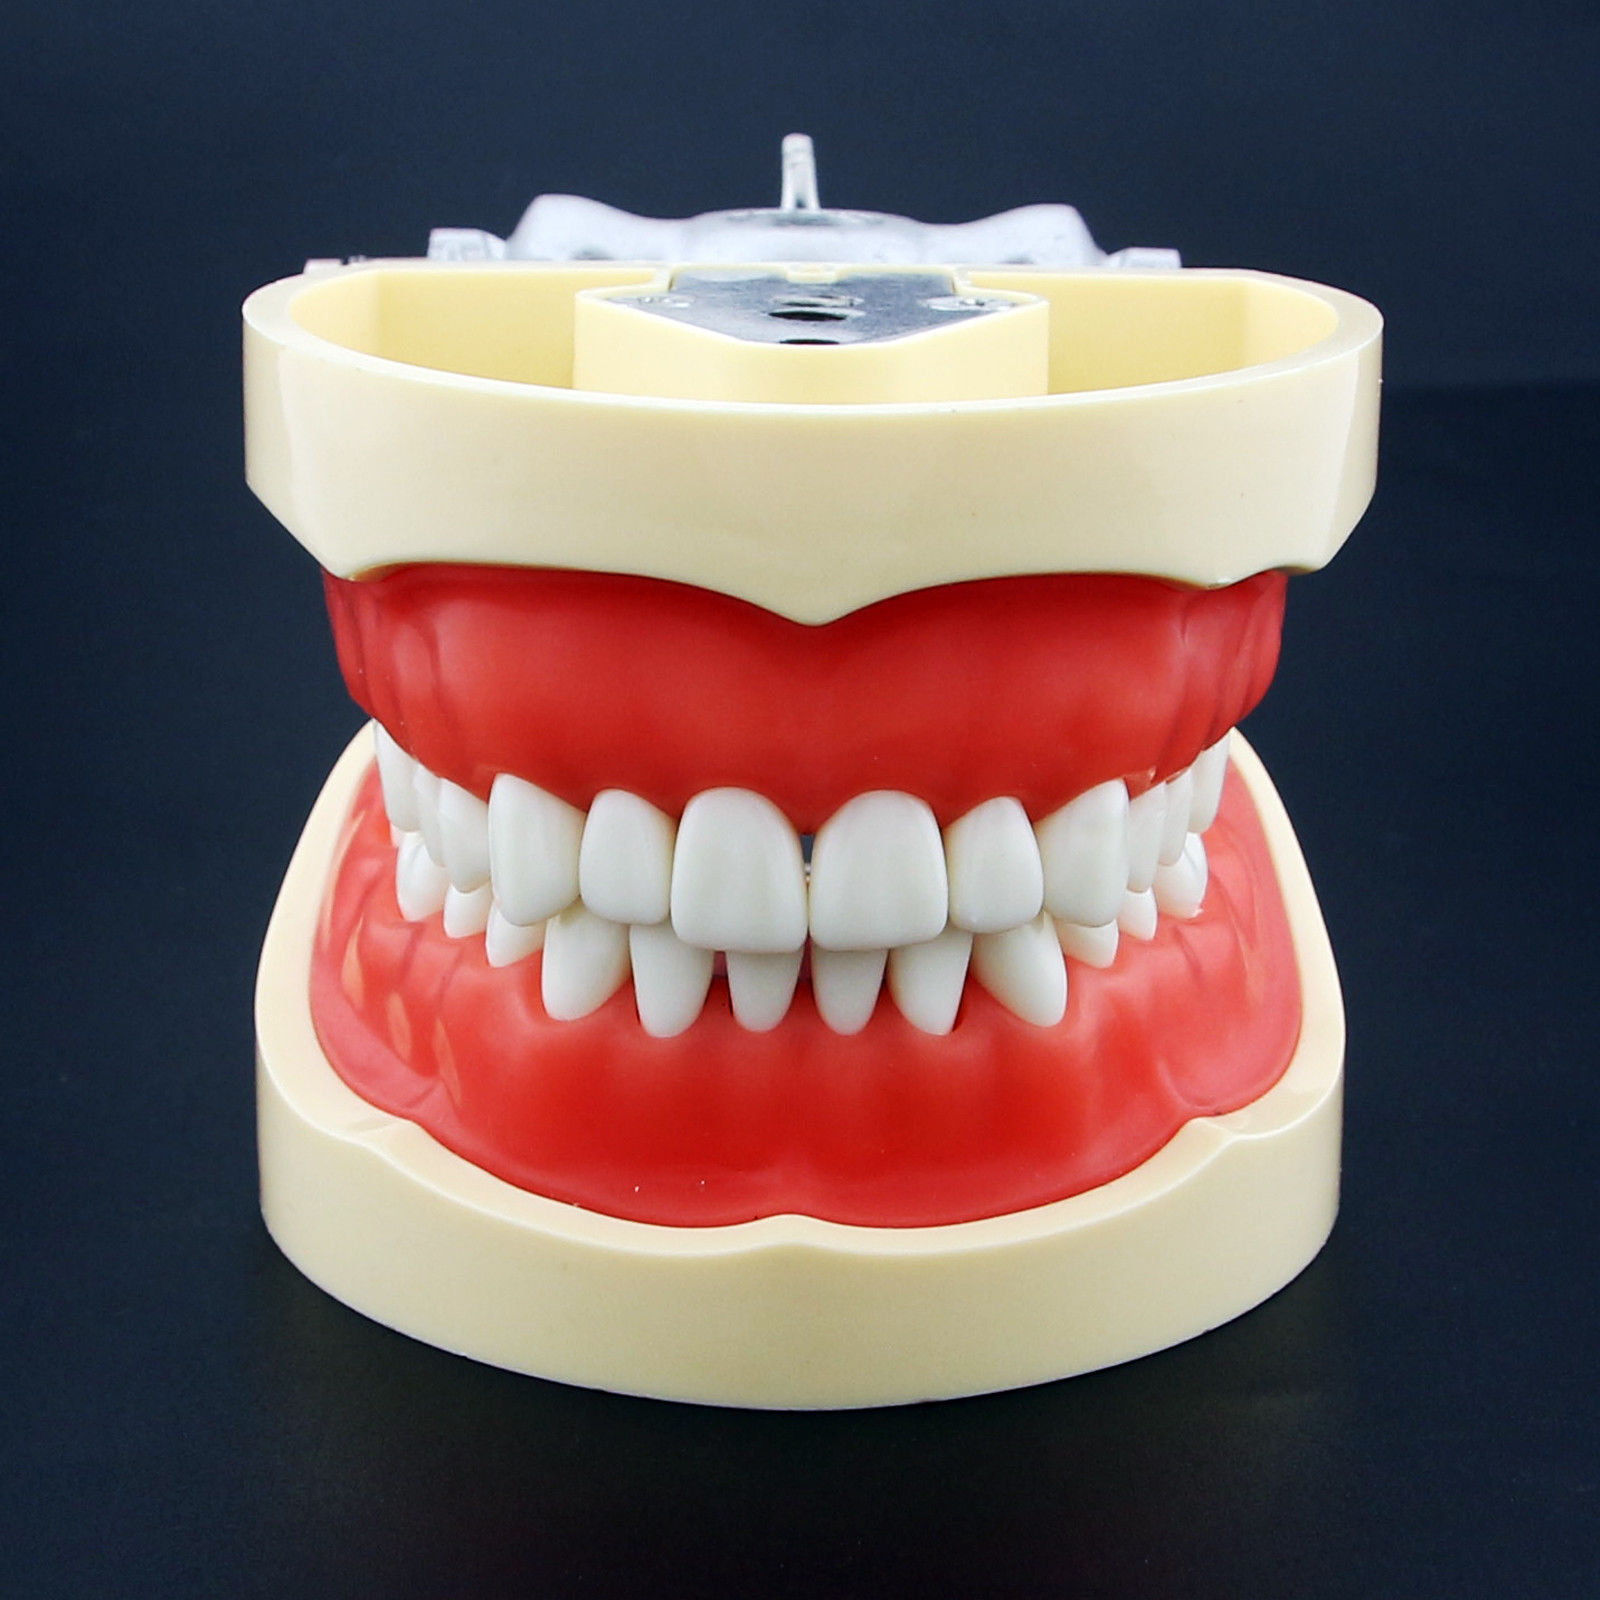 kilgore Nissin Type Dental Typodont Model 200 with Removable Teeth цены онлайн